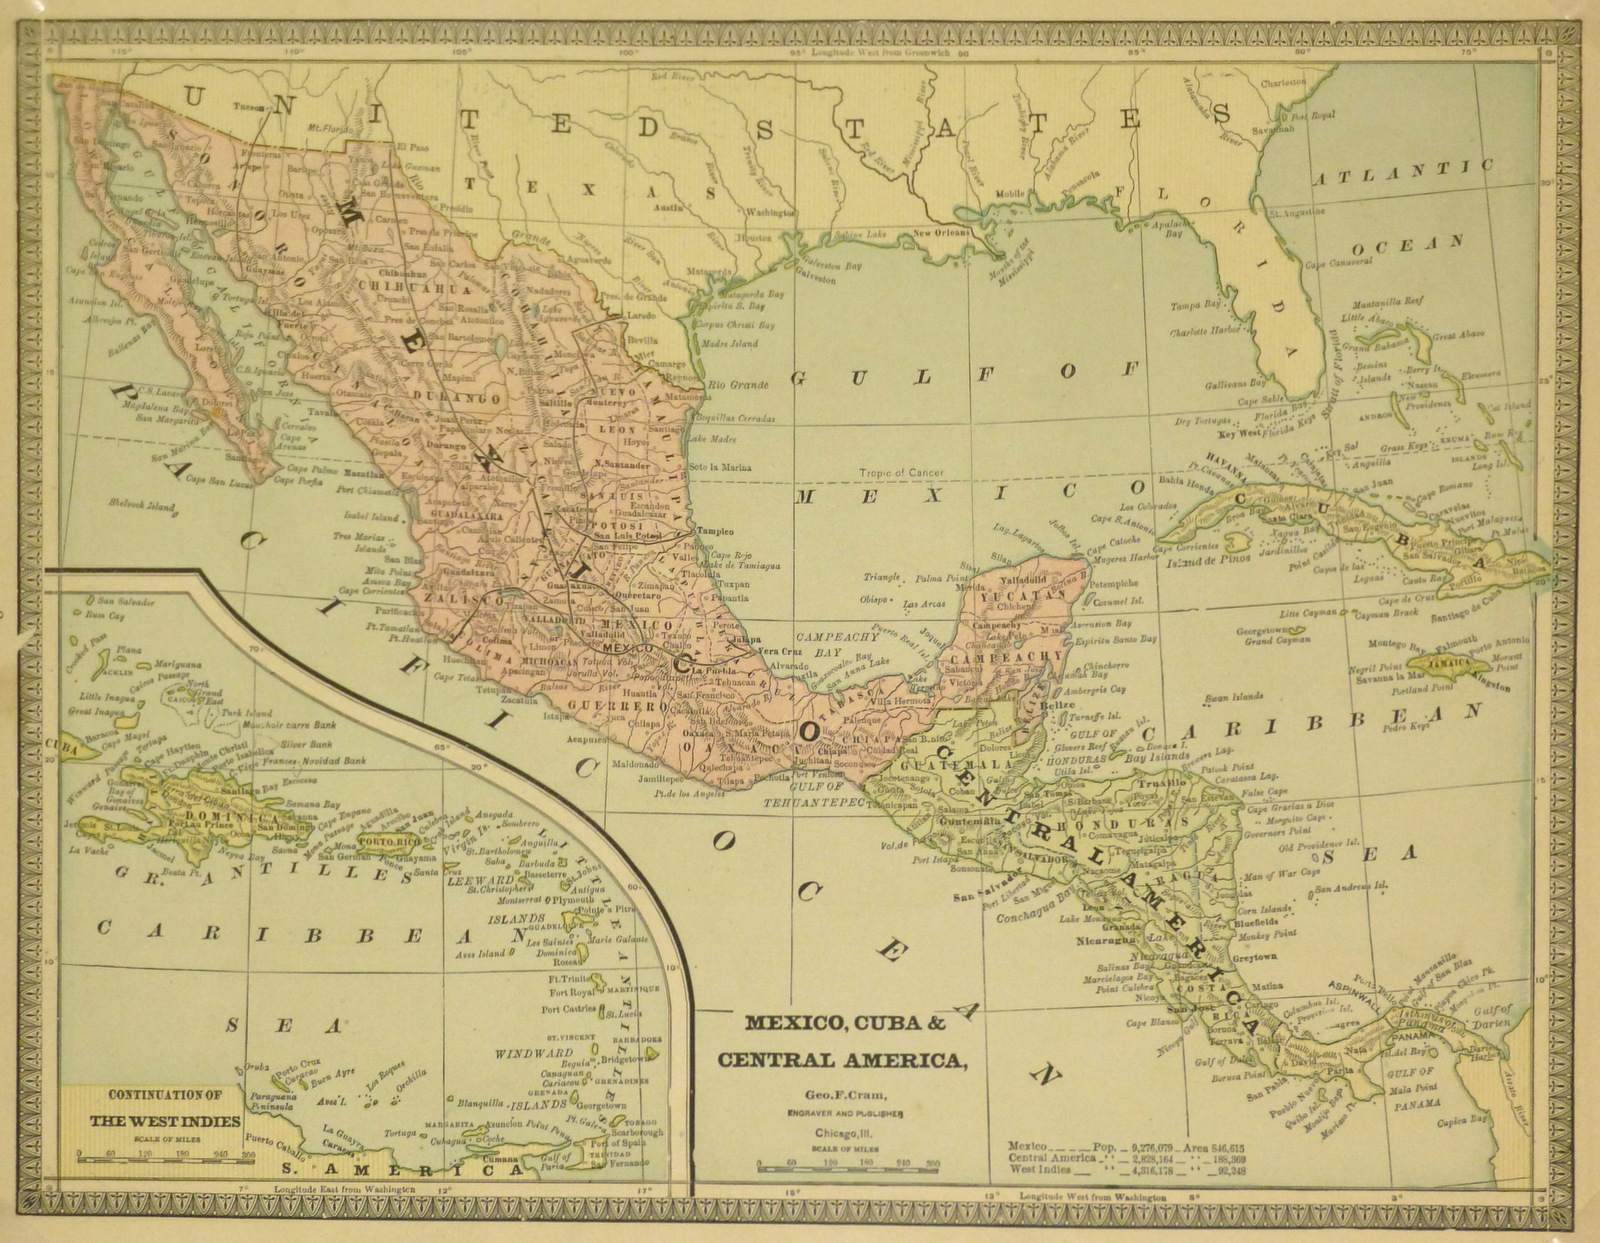 Mexico Cuba Central America Map 1890 Original Art Antique